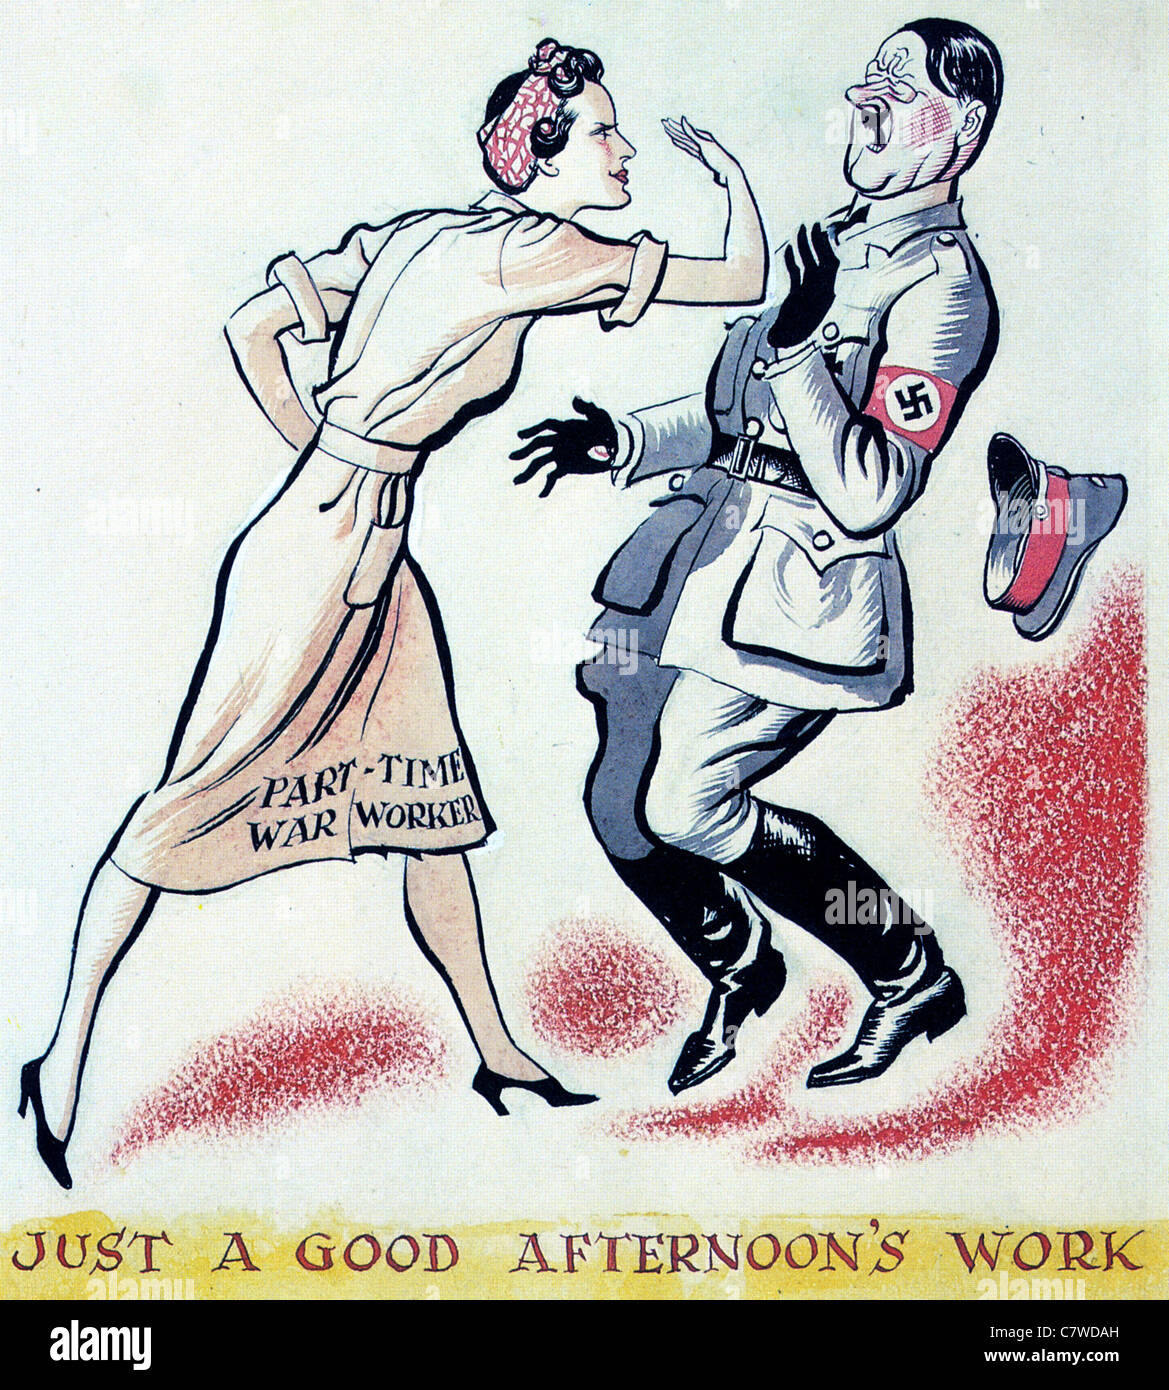 Part Time War Worker British Ww2 Poster Stock Photo